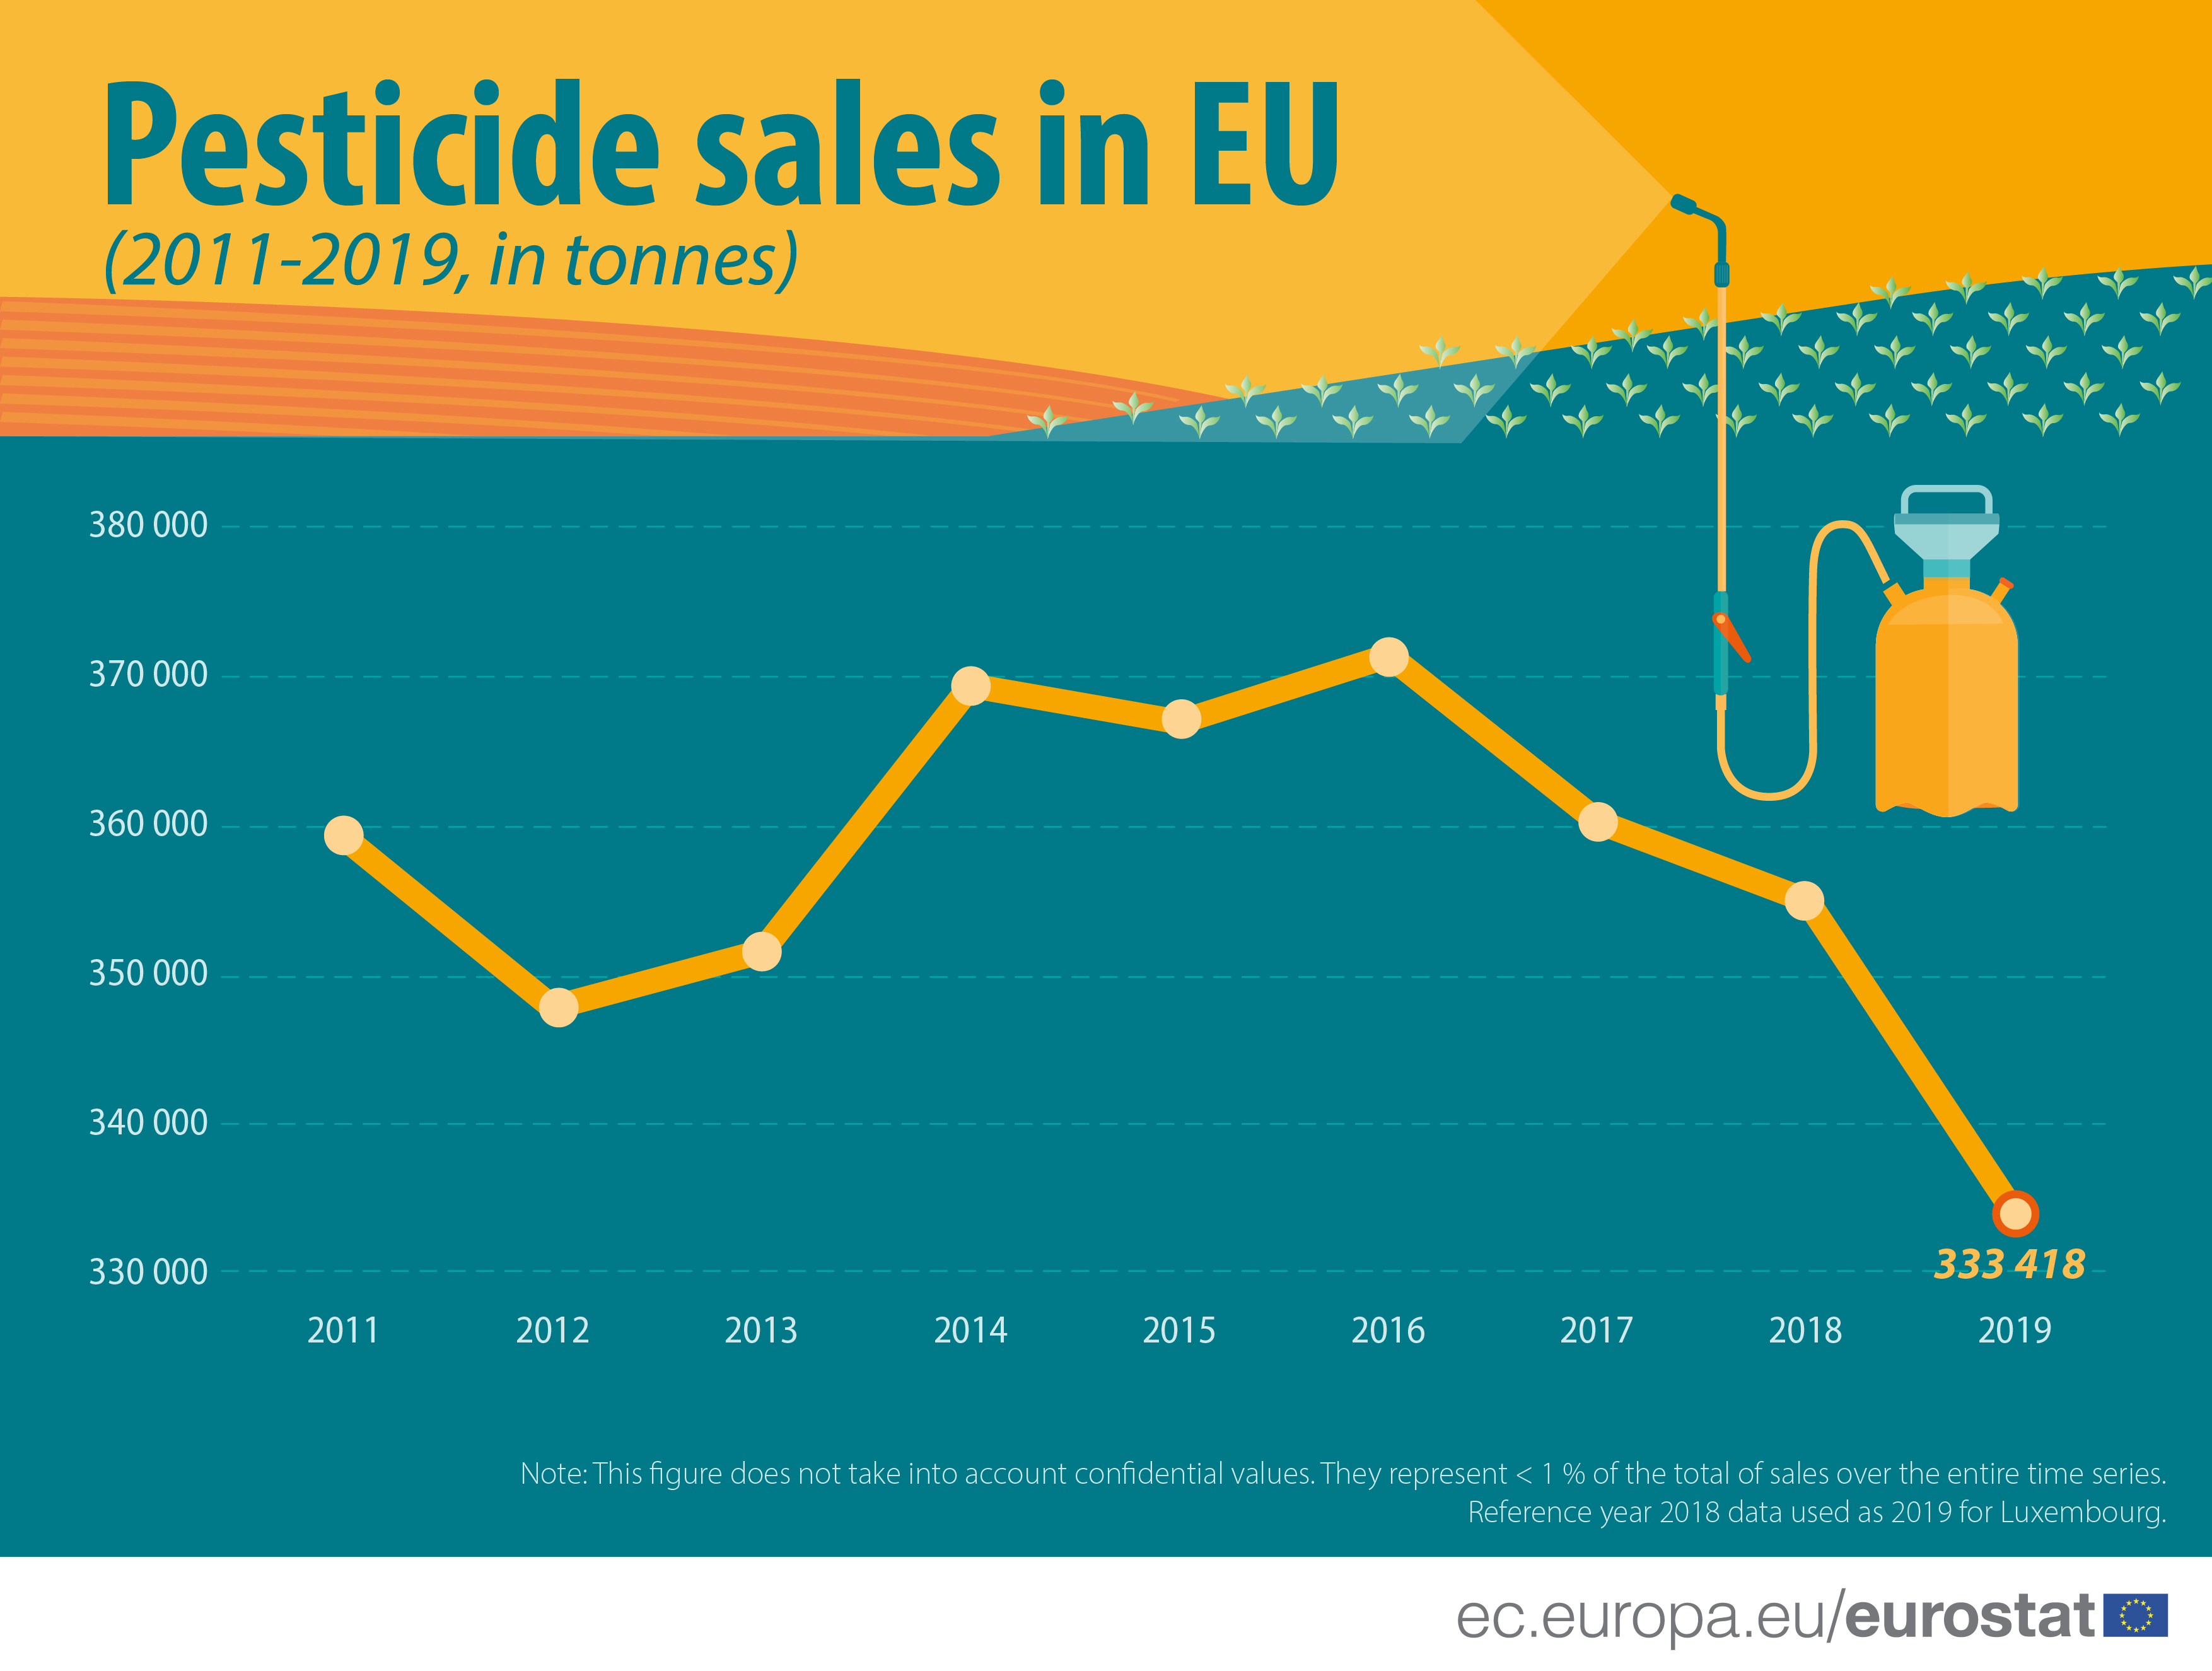 Line chart showing the volume of pesticide sales in EU in the period 2011 to 2019, the largest fall is in the year 2019